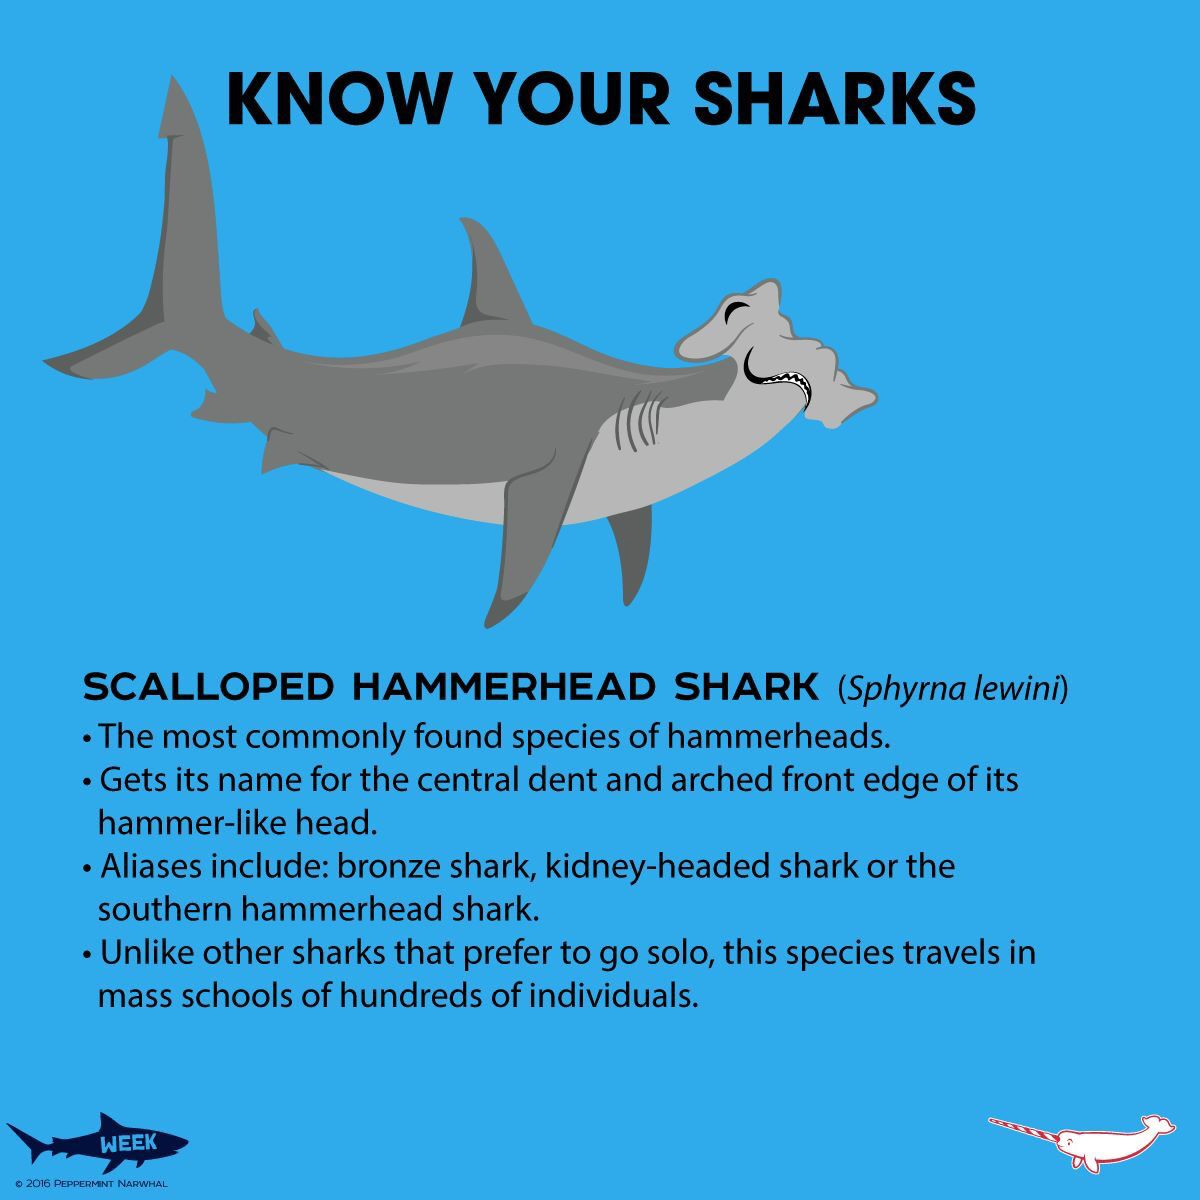 Know Your Scalloped Hammerhead Shark